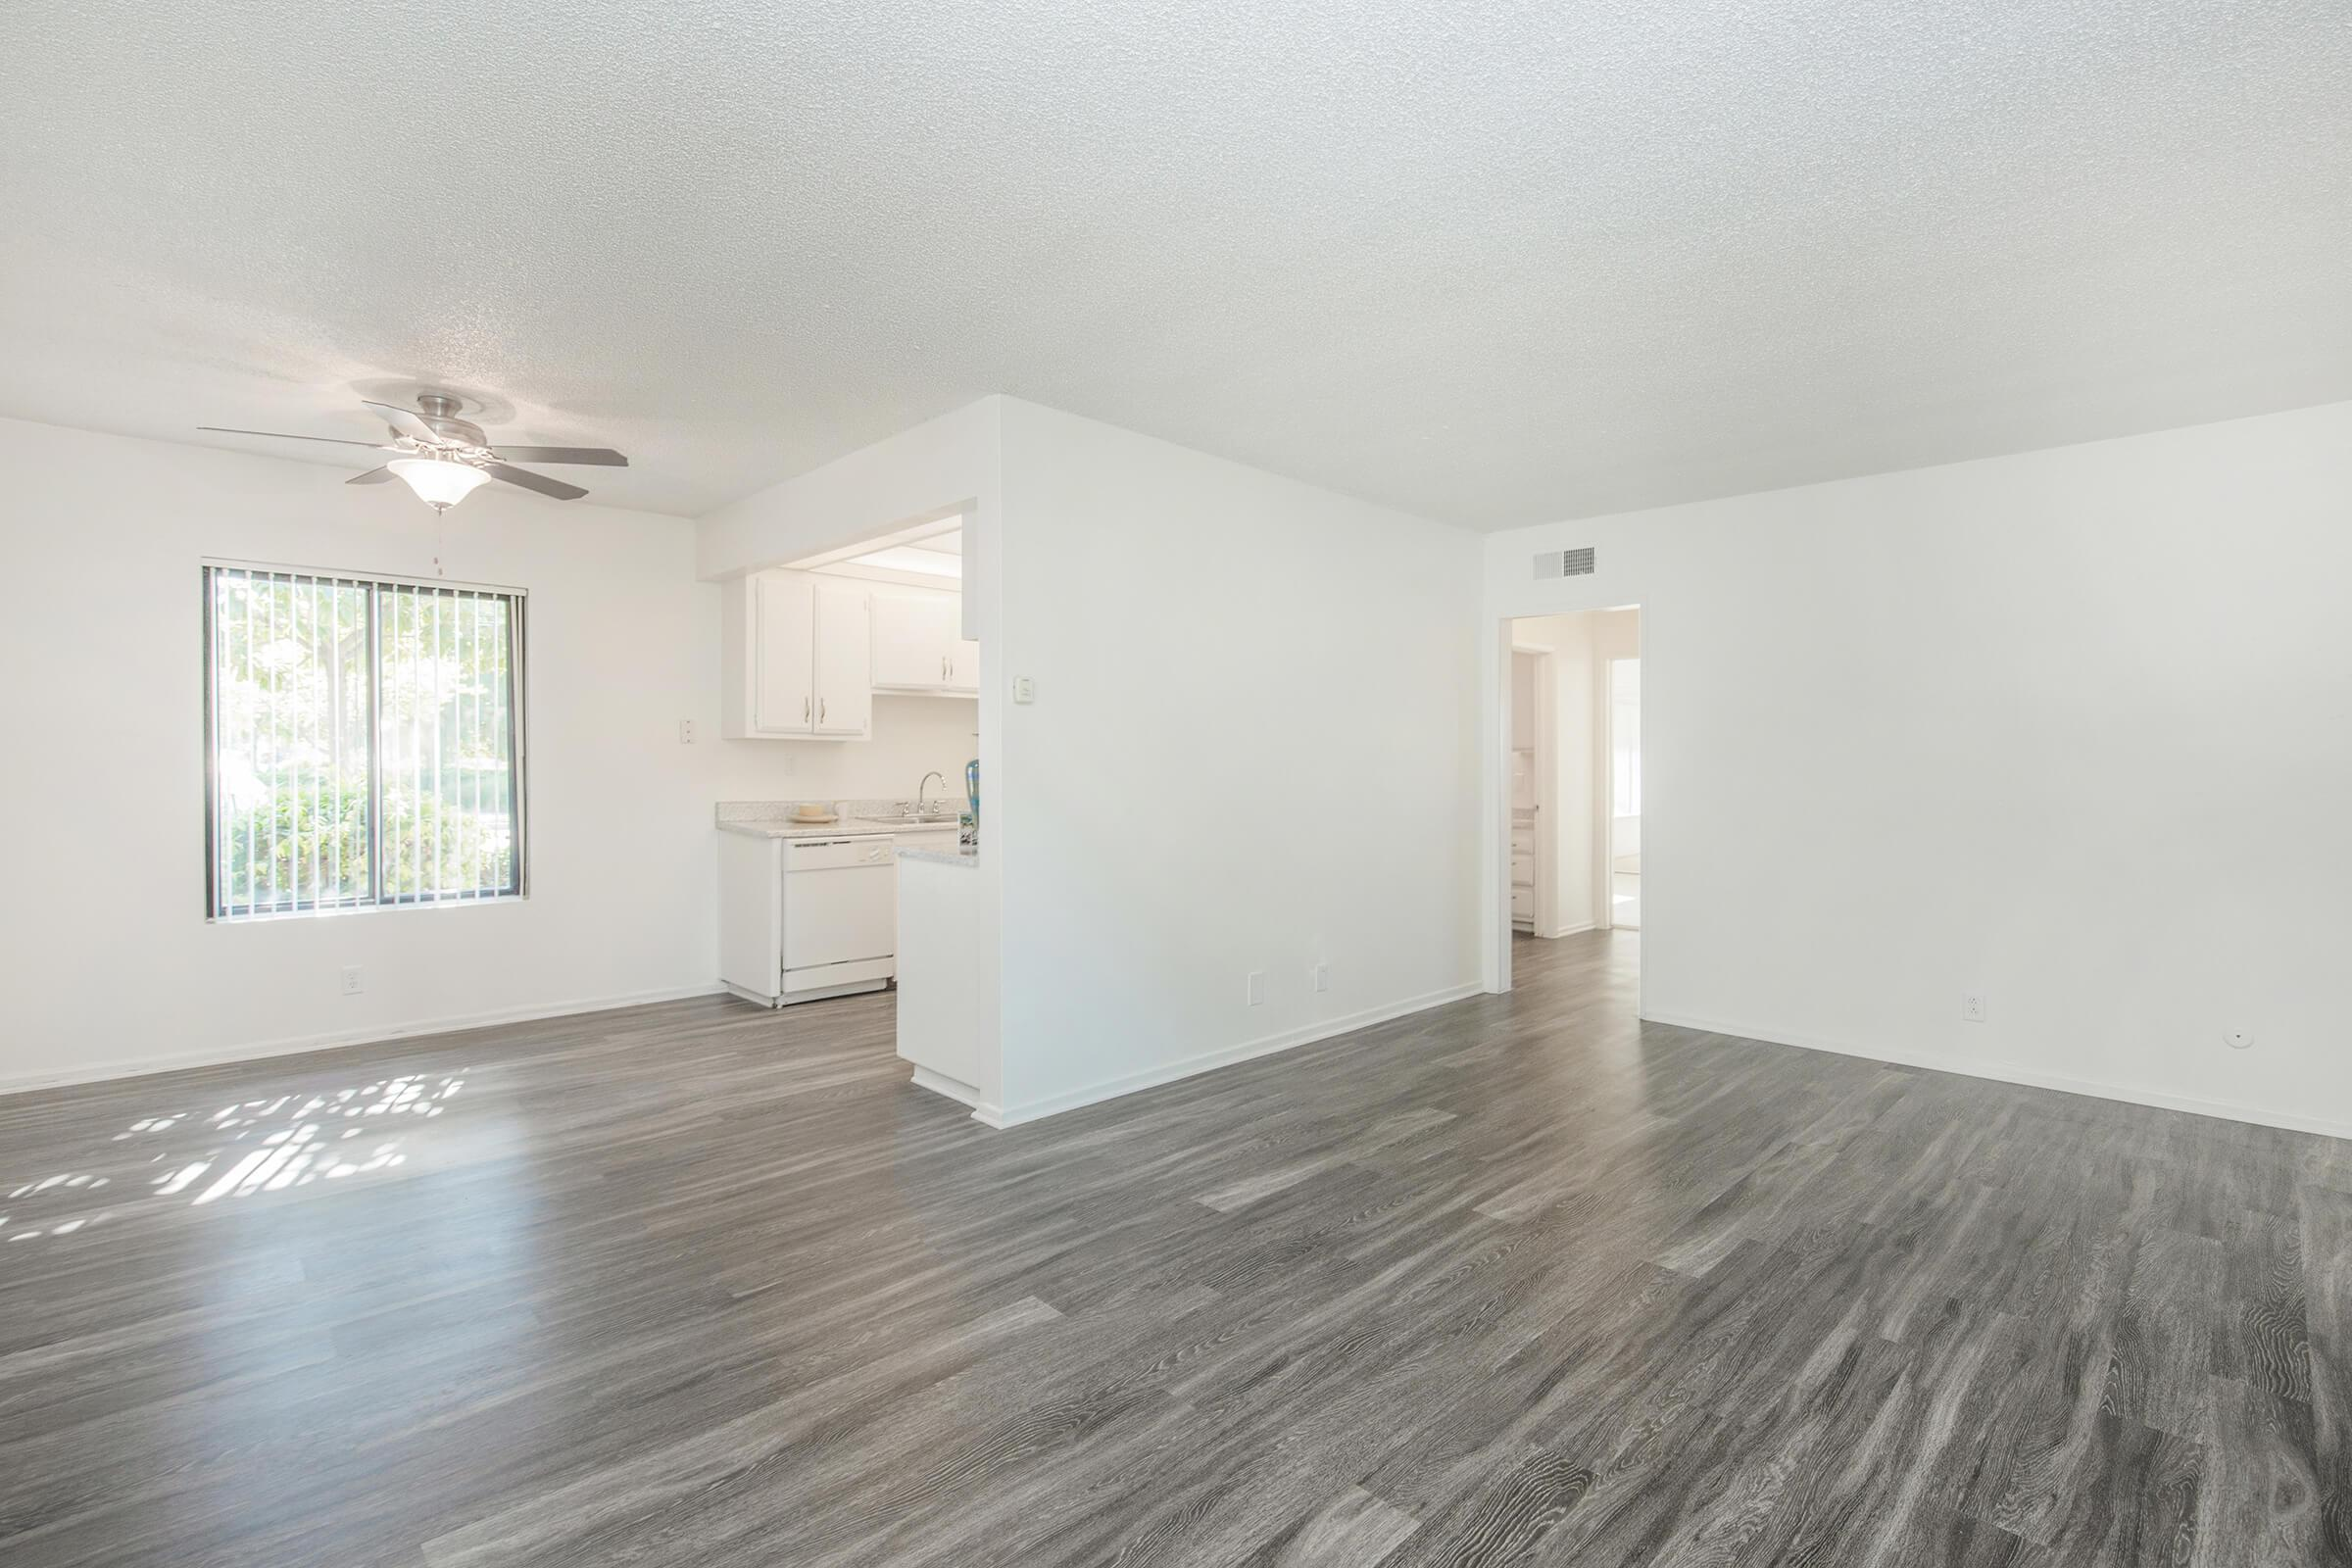 Unfurnished living room with wooden floors